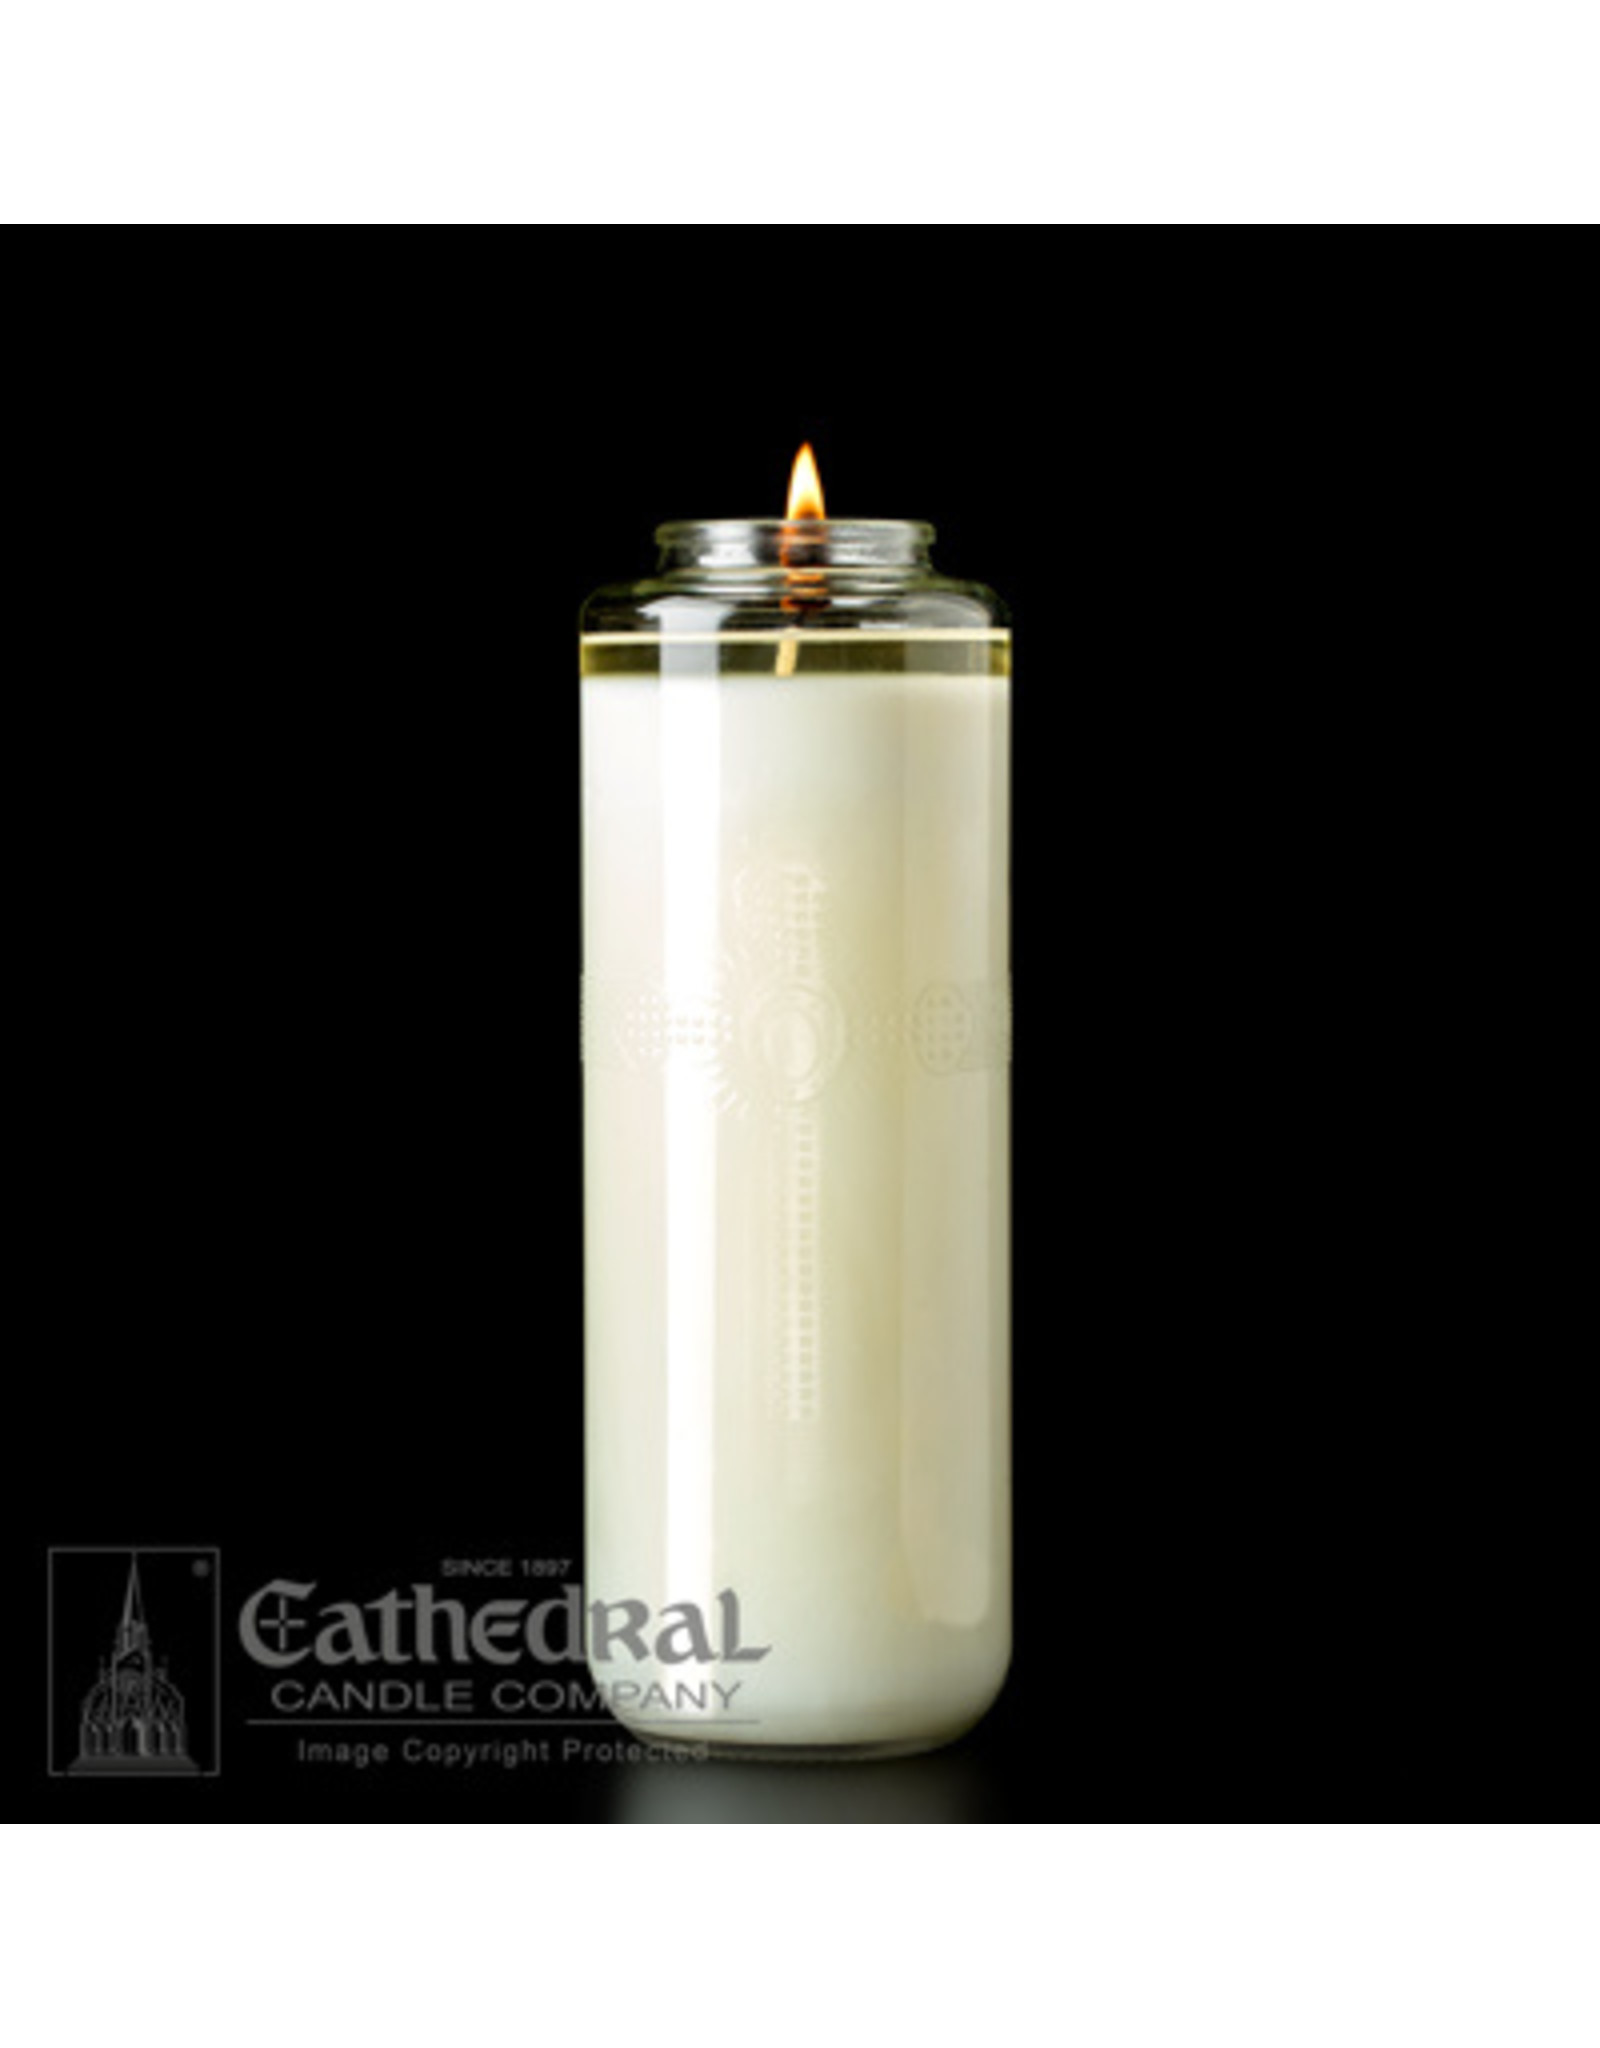 8-Day 51% Beeswax Glass Domus Christi Candle